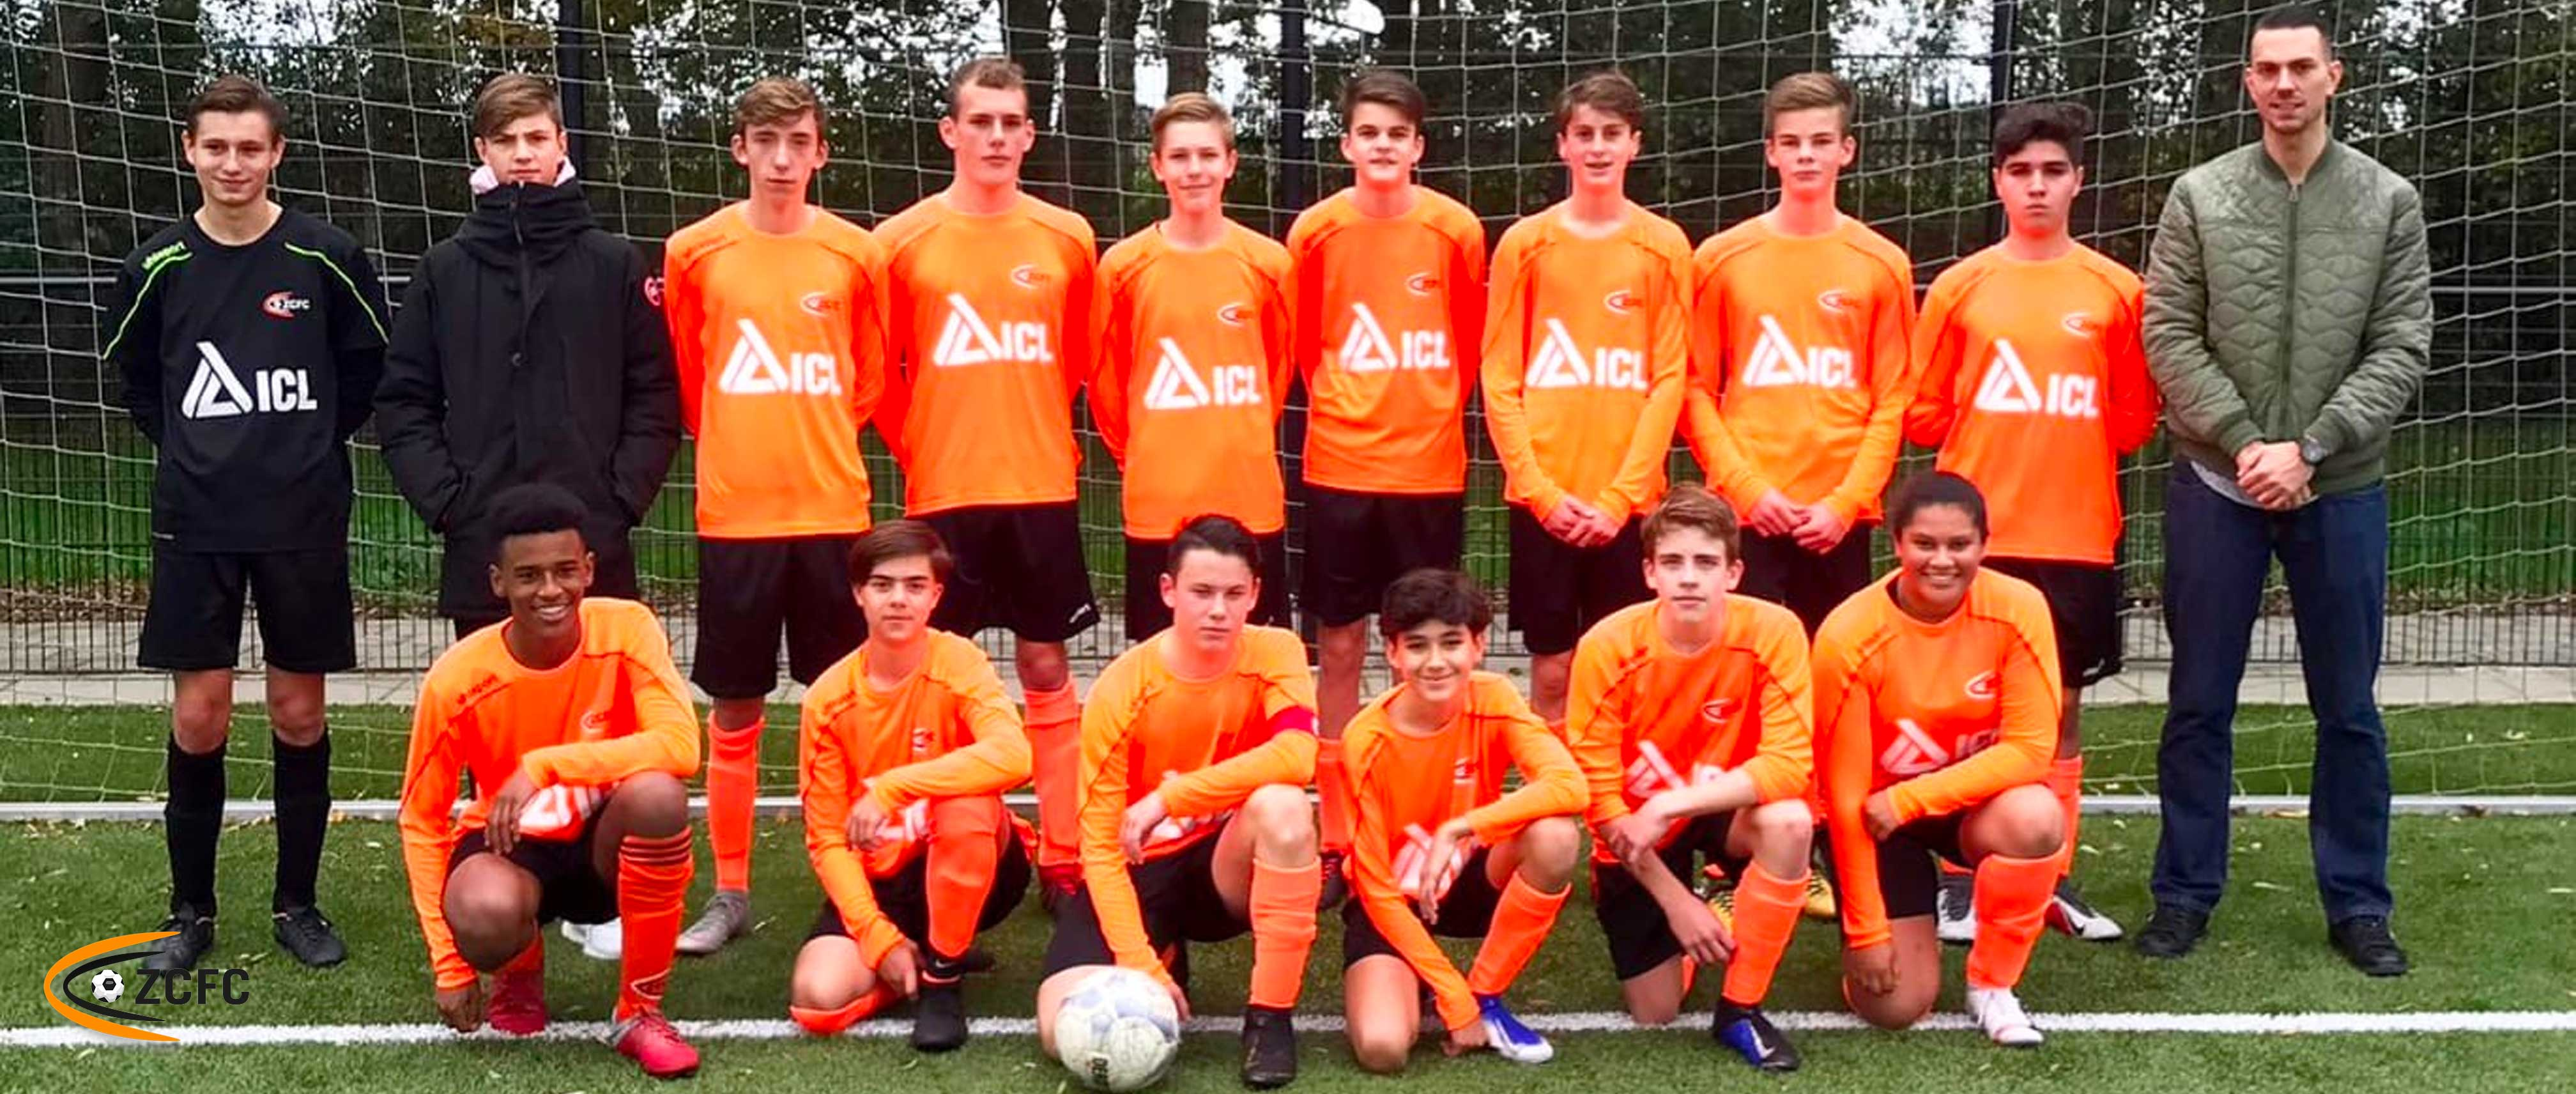 Aanleveren team foto